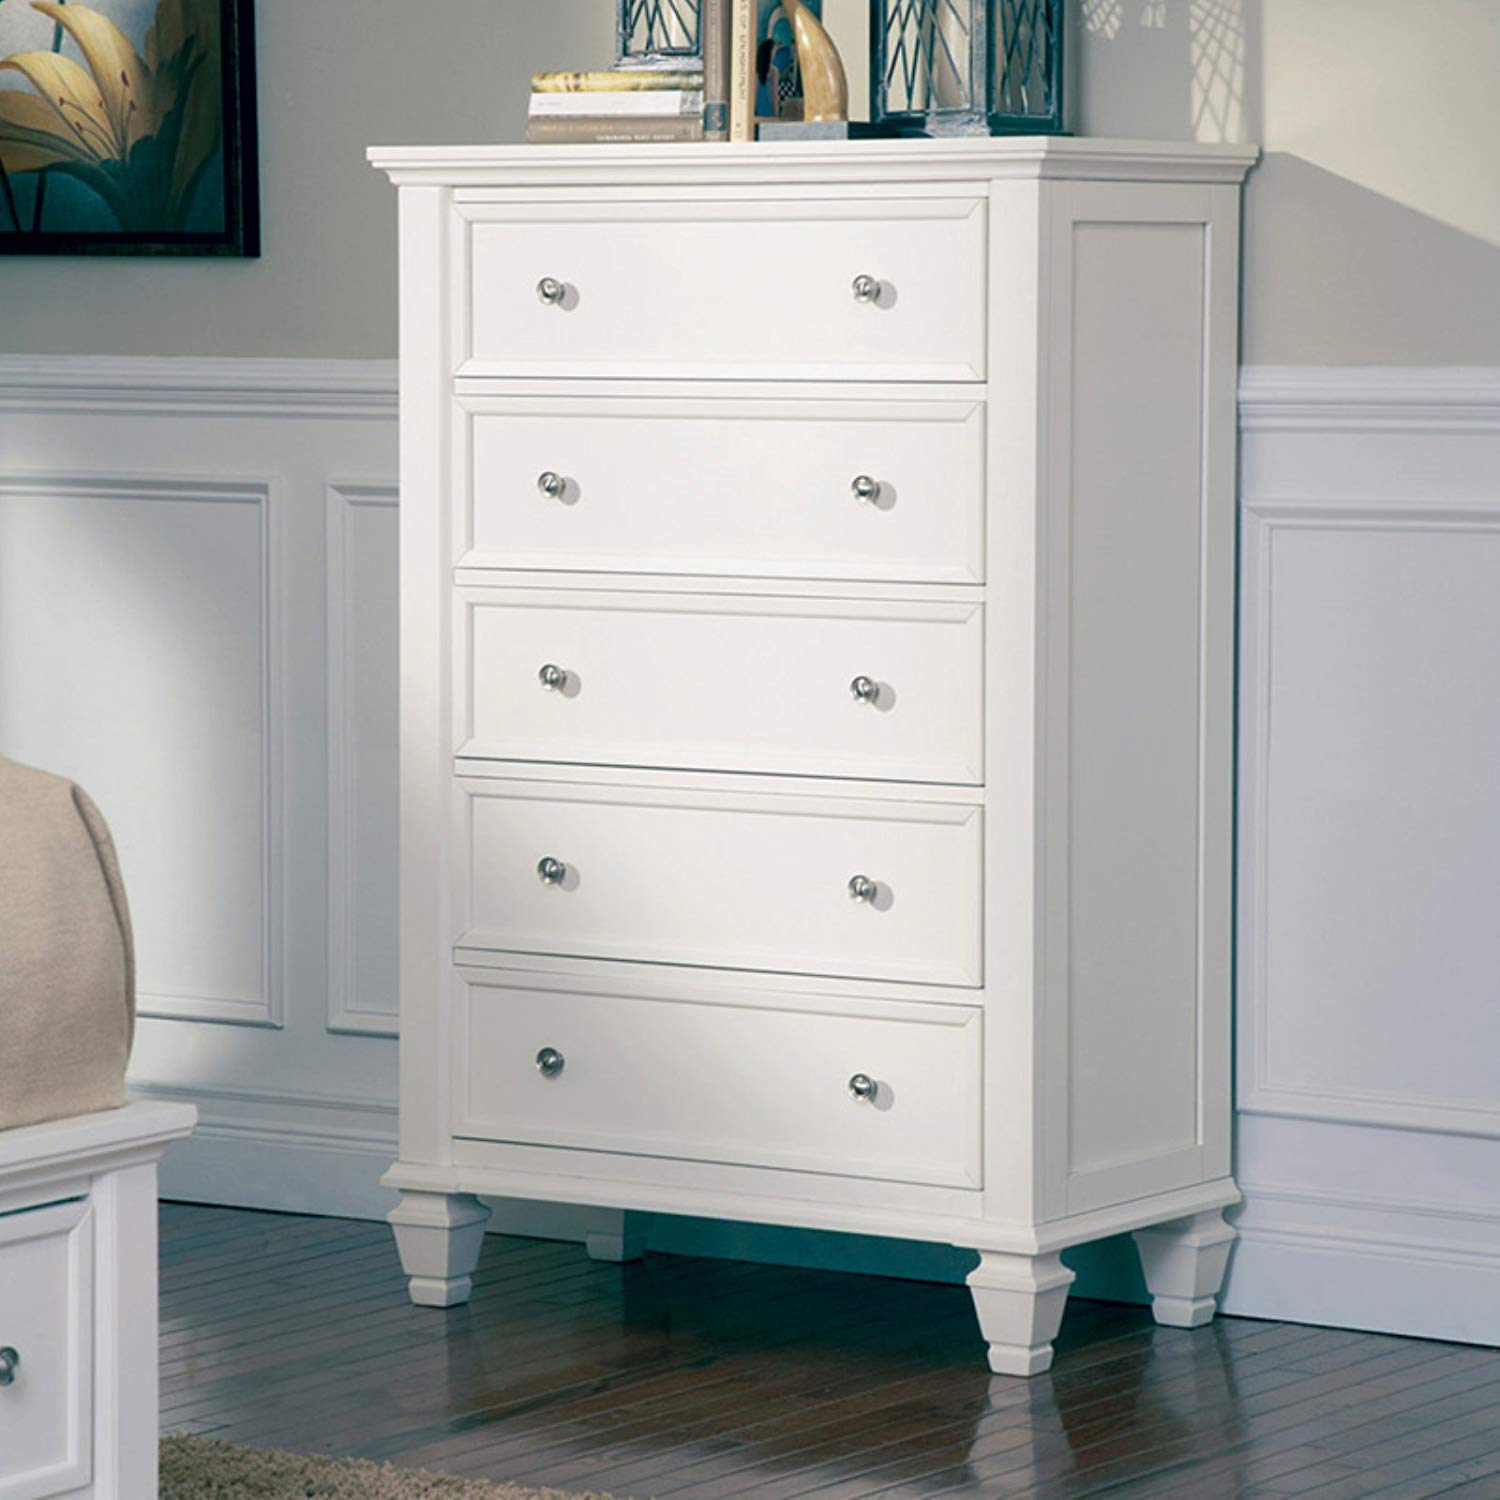 5 Drawer Chest, Sturdy and Durable, English Front and Back dt Drawer Construction, Silver Finish Knobs and Handles, Made of Asian Hardwood, Asian Tropical Wood, MDF, White + Expert Guide